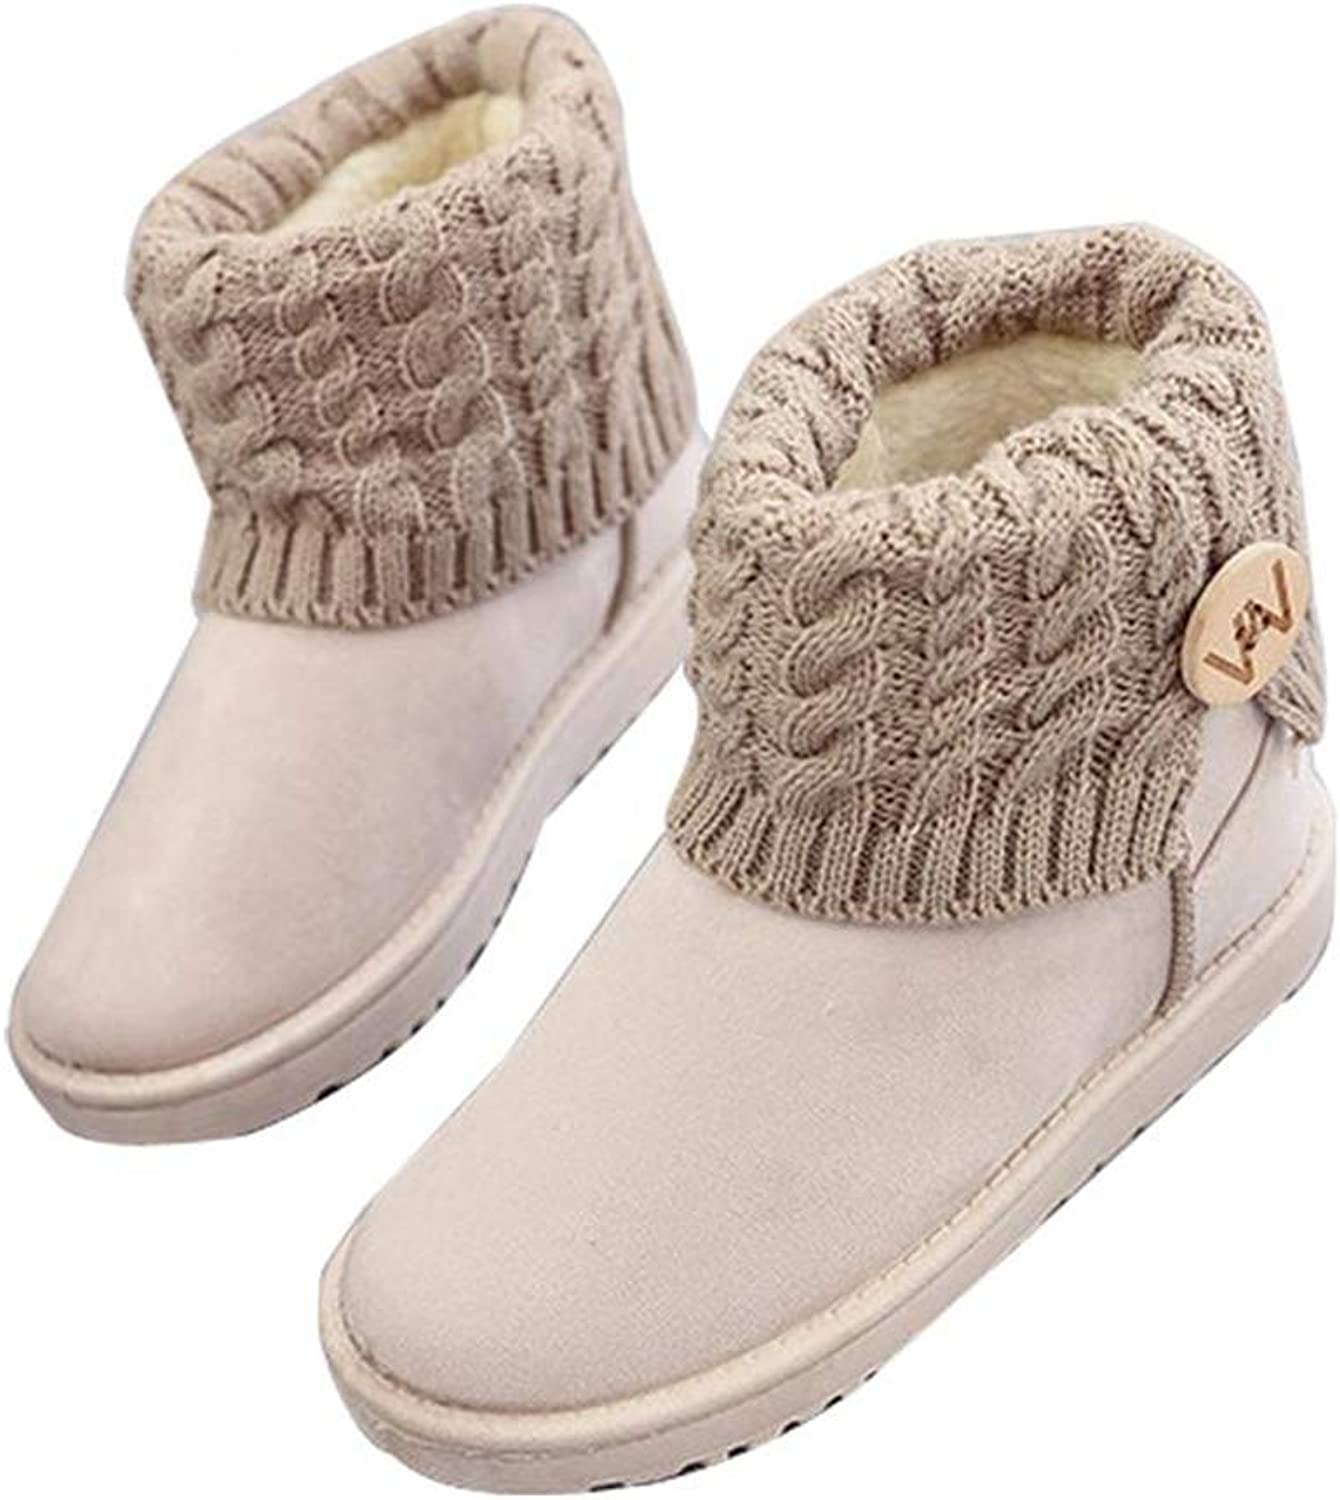 Women Snow Boot Ankle Wool Line Round Toe Concise Black Beige Suede Non-Slip Plush Fur Warm Laides Outdoor Casual Walking shoes